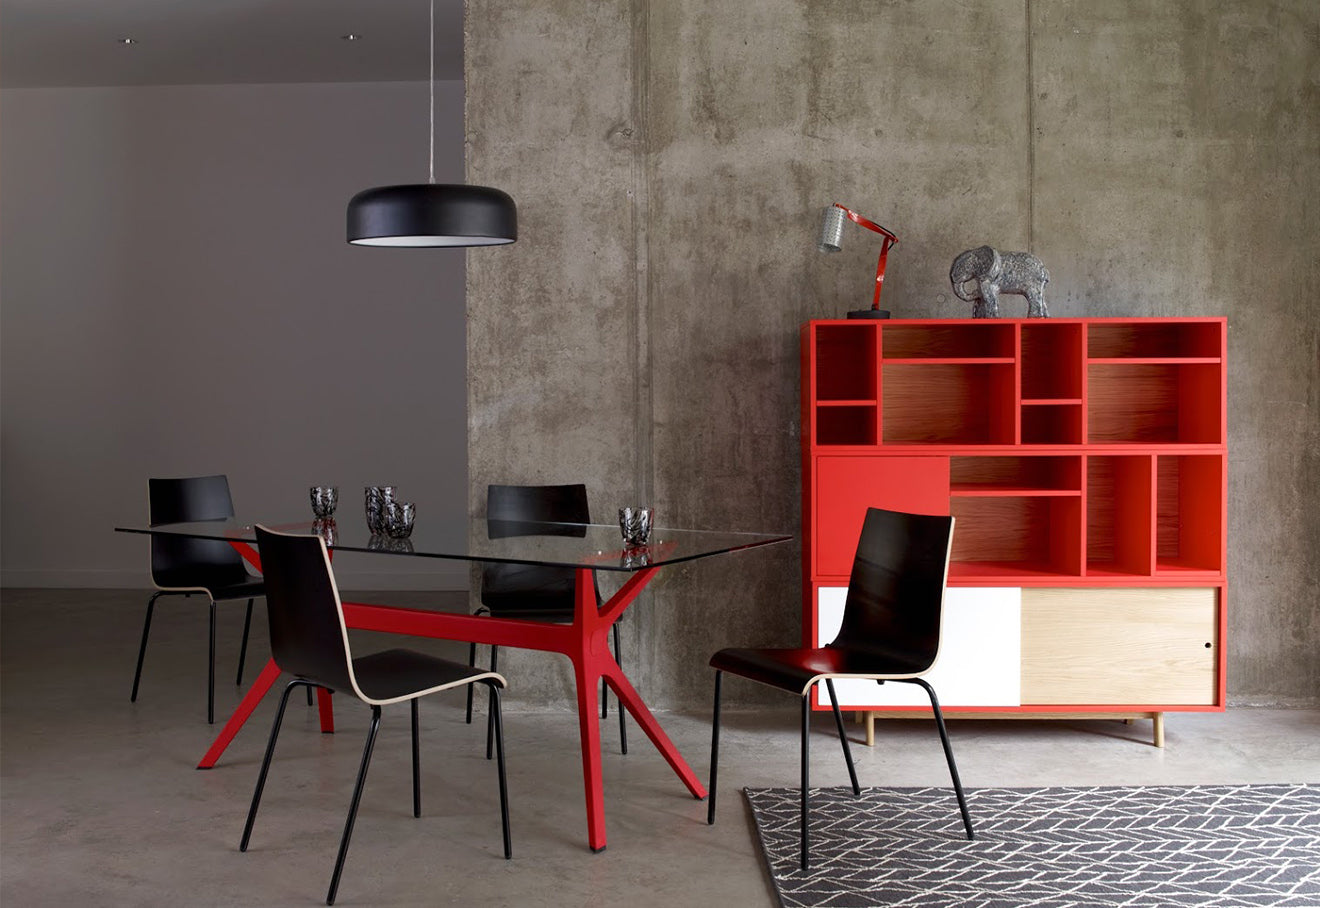 Habitat Spring Summer 2016 furniture collection SS16 Dining furniture